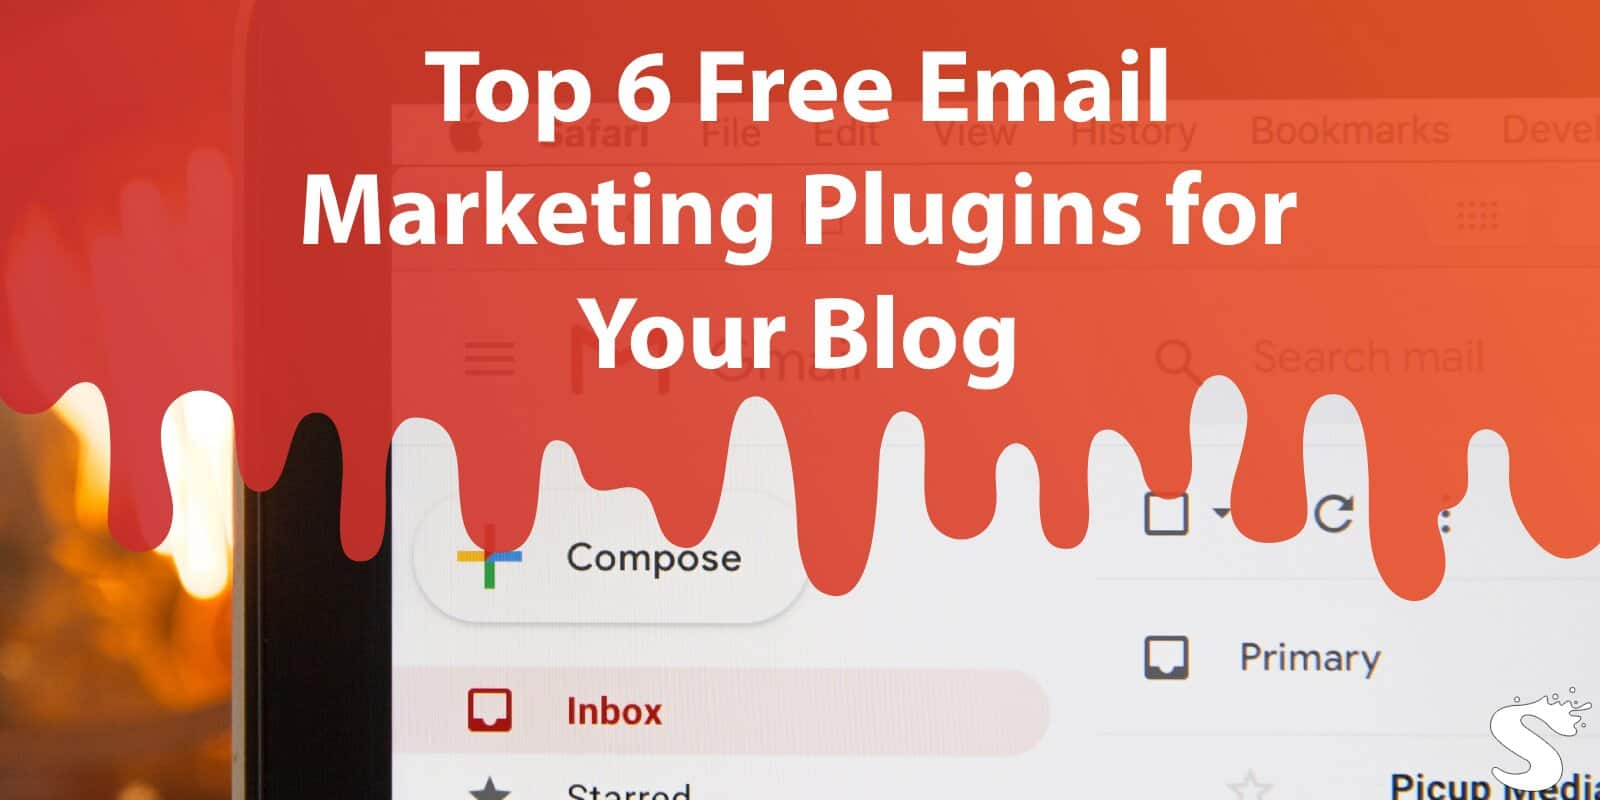 Top 6 Free Email Marketing Plugins for Your Blog